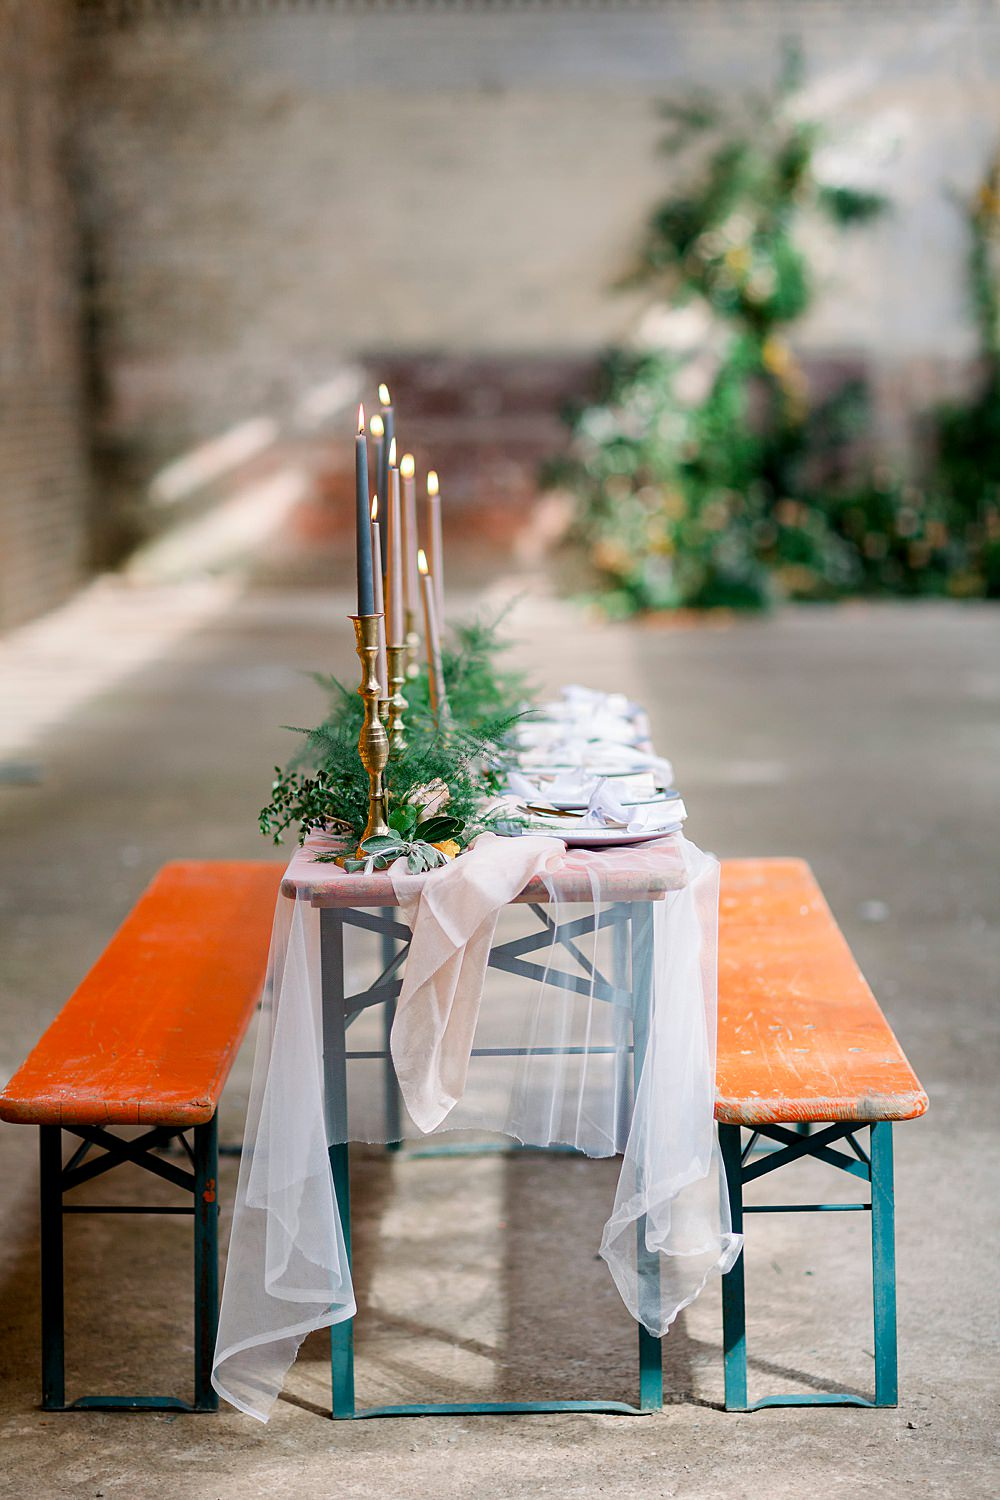 Tablescape Table Decor Tulle Coral Orange Cloths Candles Greenery Foliage Natural Boho Industrial Wedding Ideas Jo Bradbury Photography